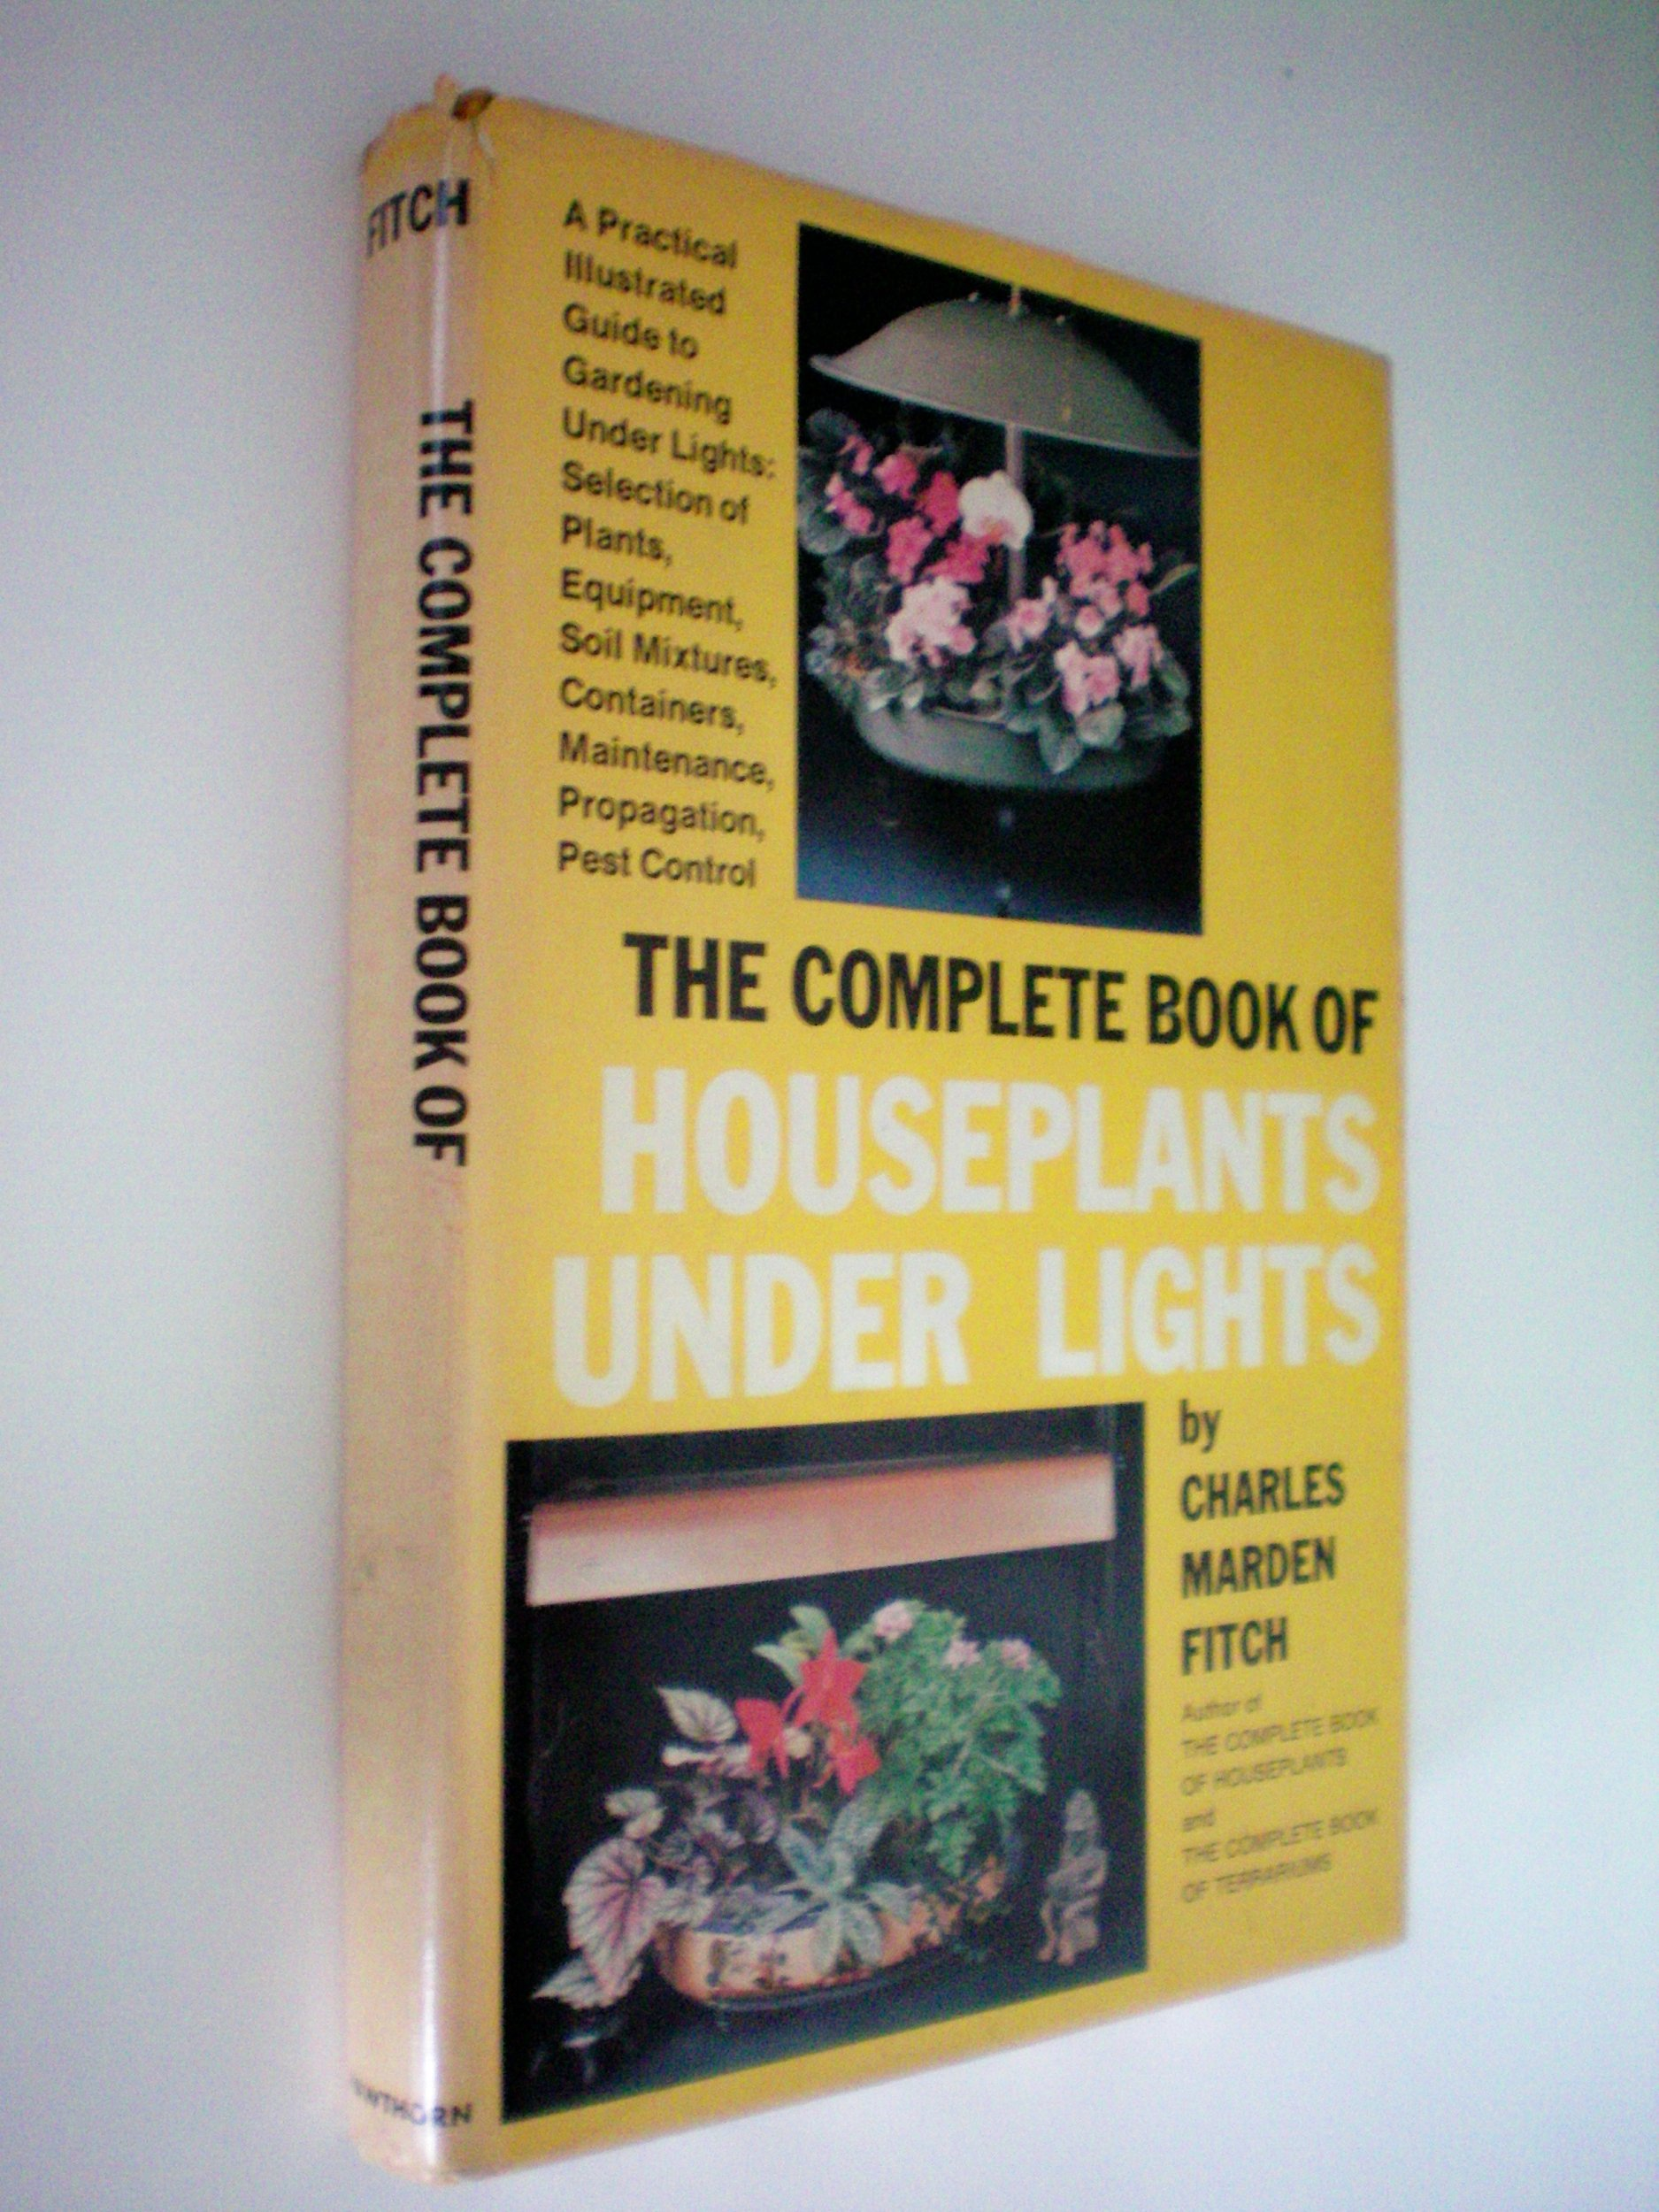 The Complete Book of Houseplants Under Light -- A Practical Illustrated Guide to Gardening Under Lights: Selection of Plants, Equipment, Soil Mixtures, Containers, Maintenance, Propagation, Pest Control